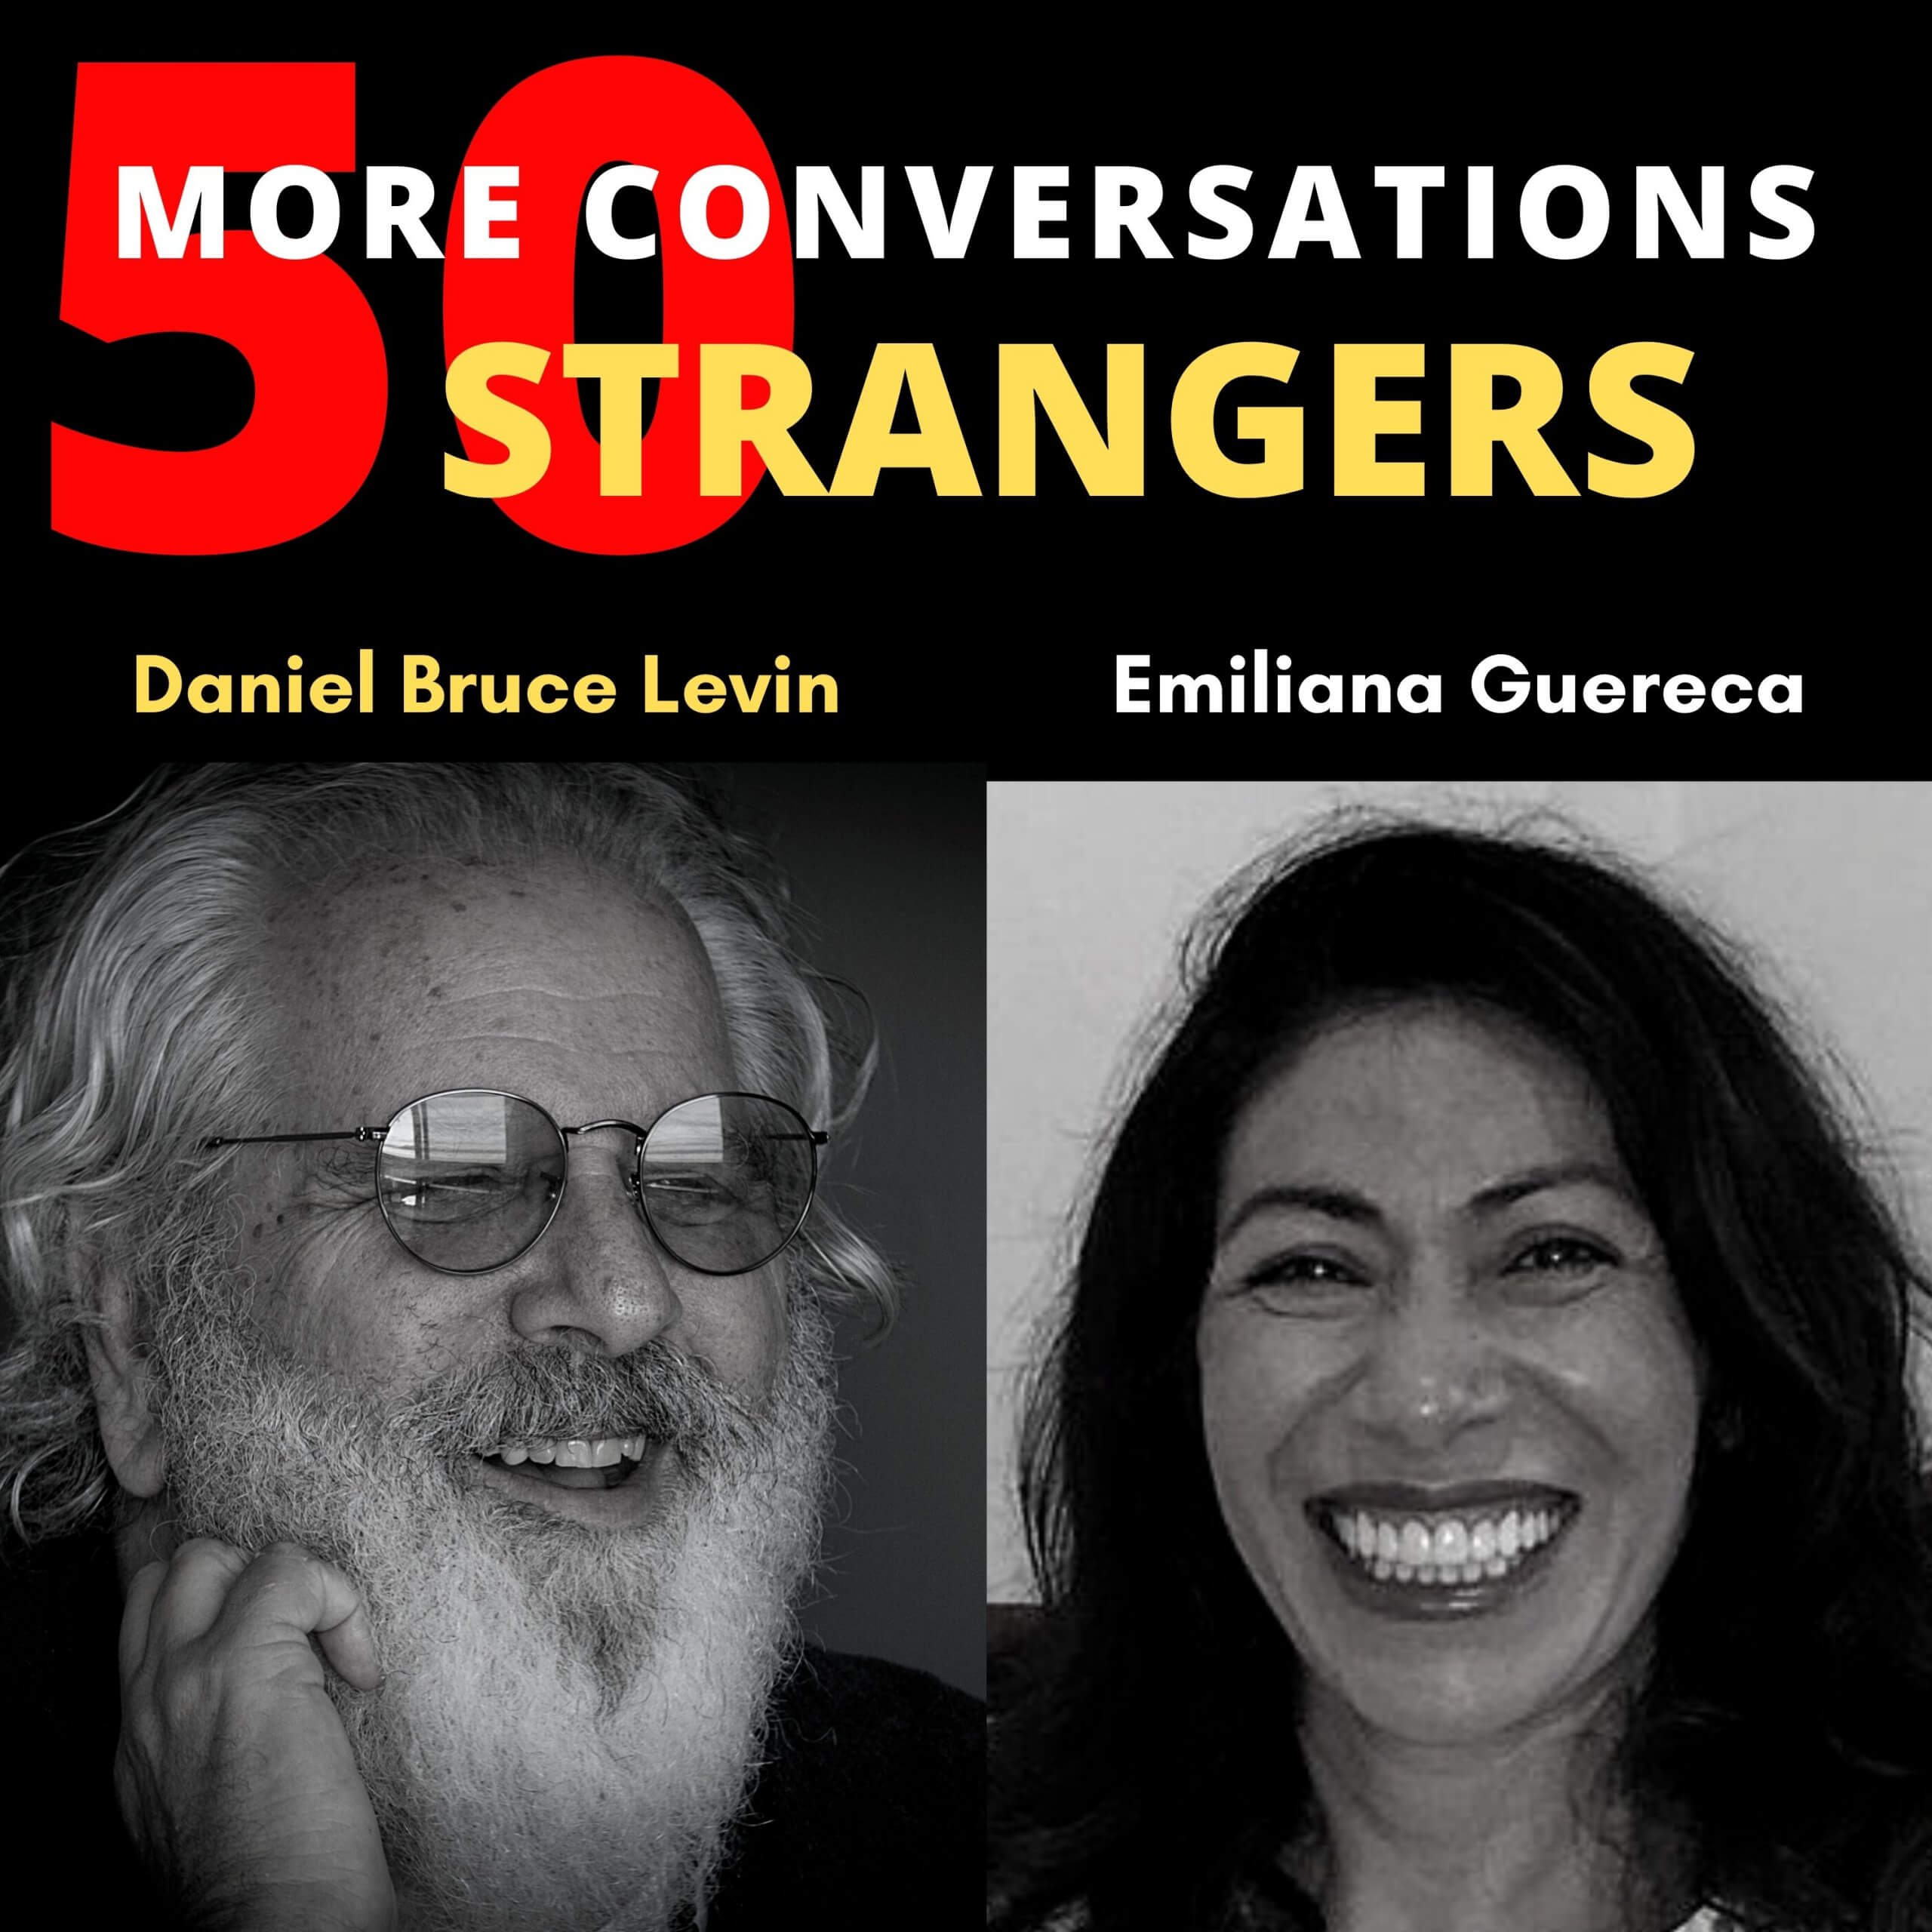 50 More Conversations with 50 More Strangers with Emiliana Guereca